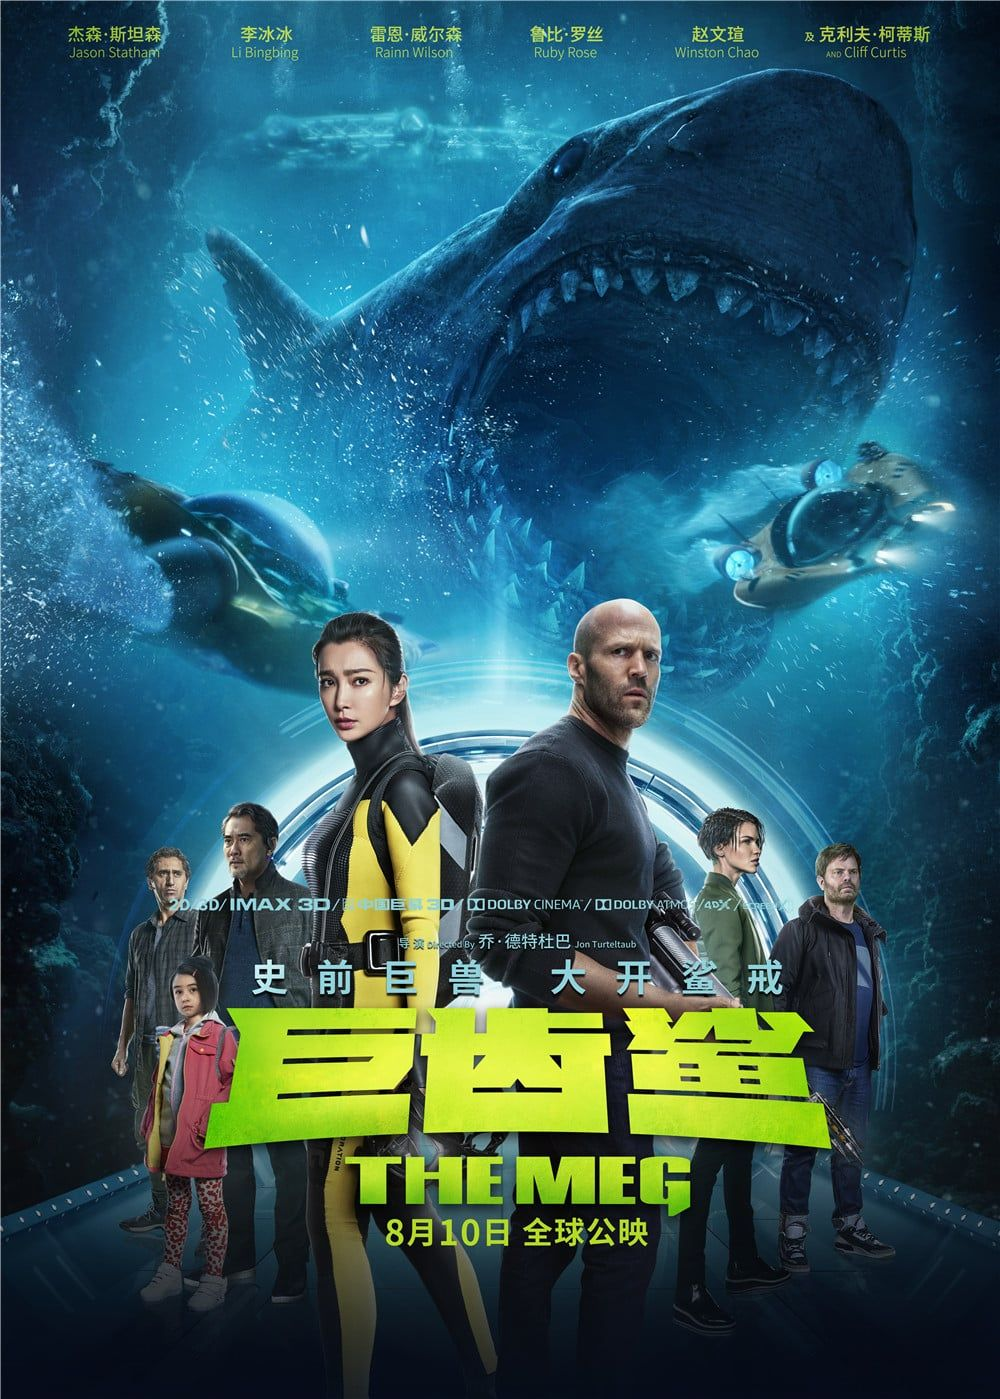 [HD1080p] The Meg FULL MOVIE HD1080p Sub English Meg